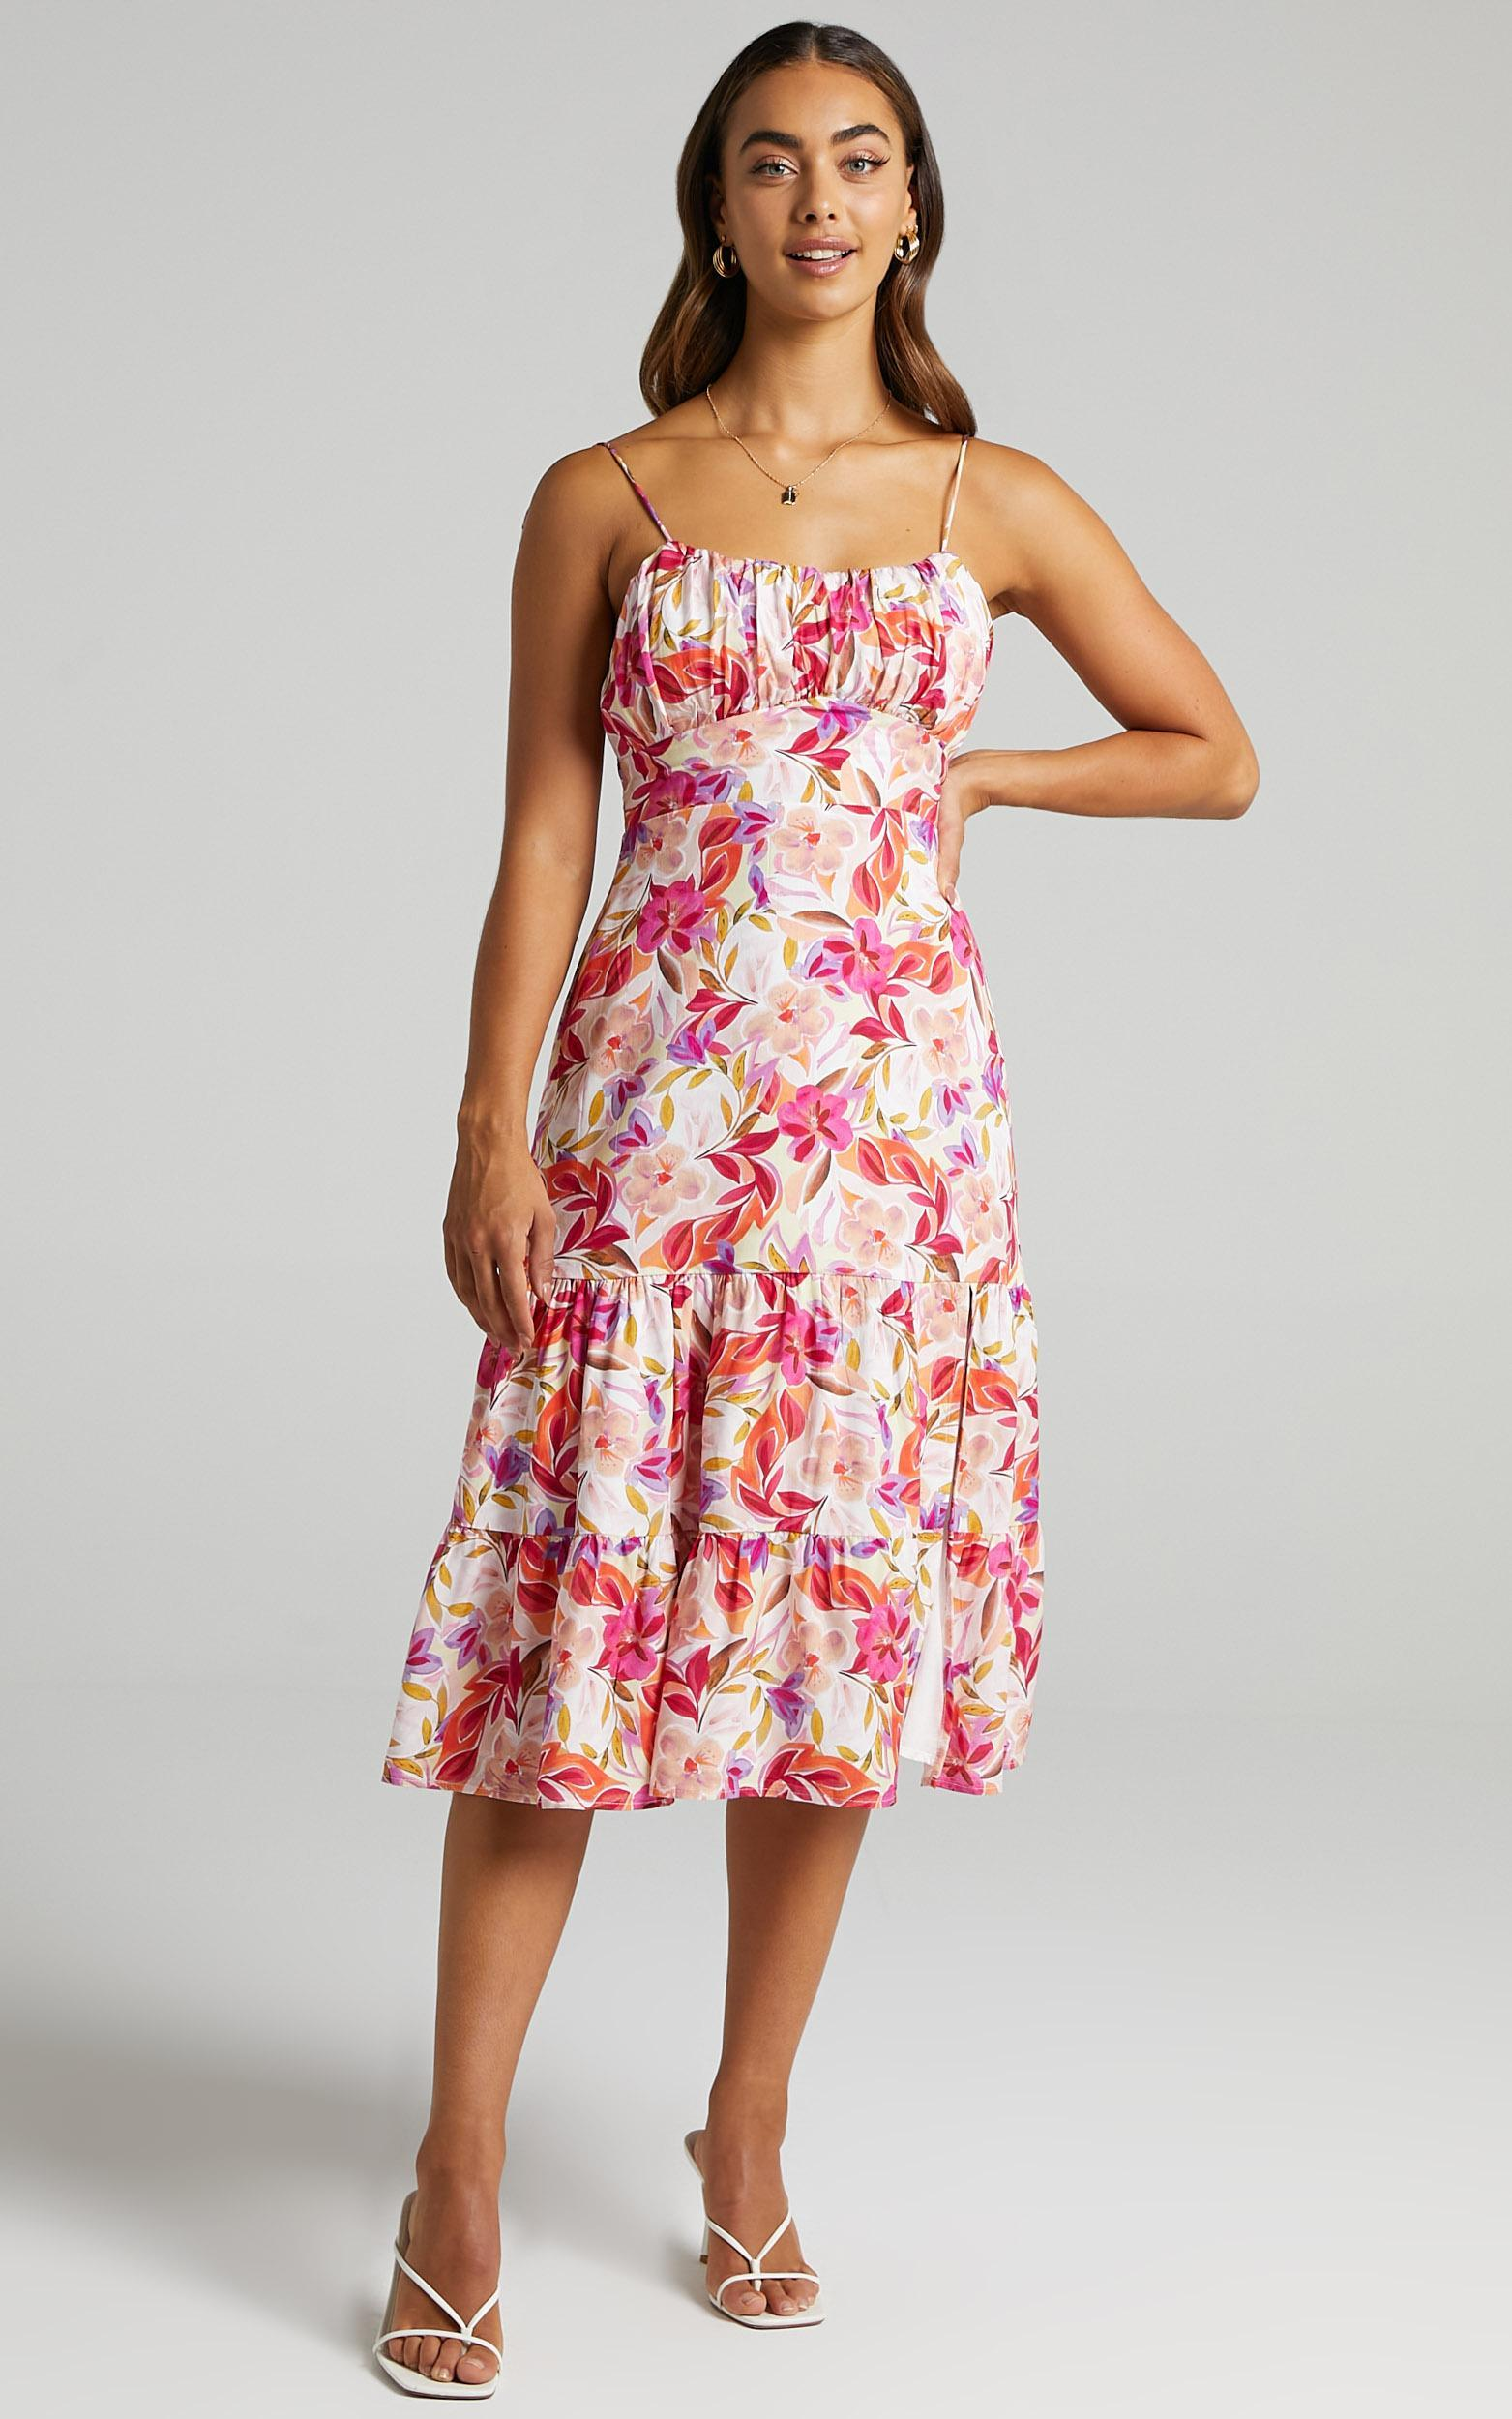 Monico Dress in Eventful Bloom - 6 (XS), PNK29, hi-res image number null